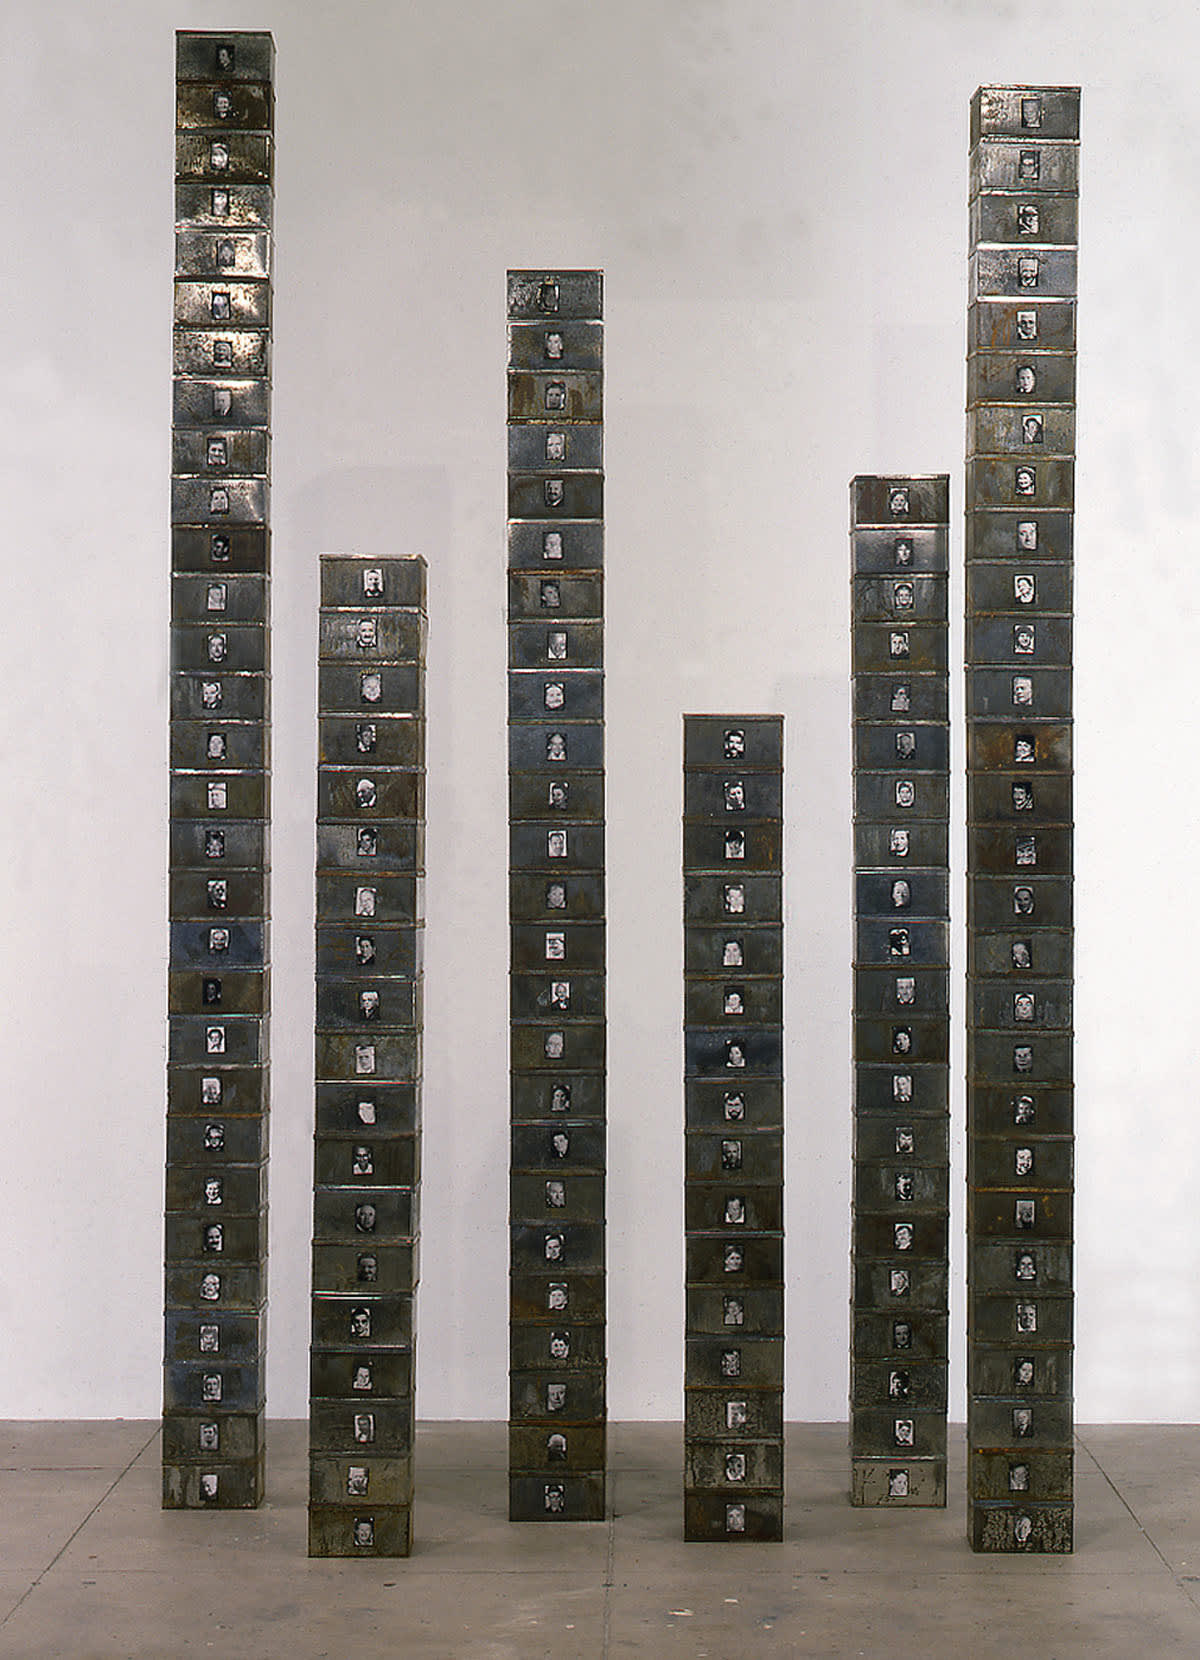 Christian Boltanski, Reserve of Dead Swiss (One's Not Dead), 1991